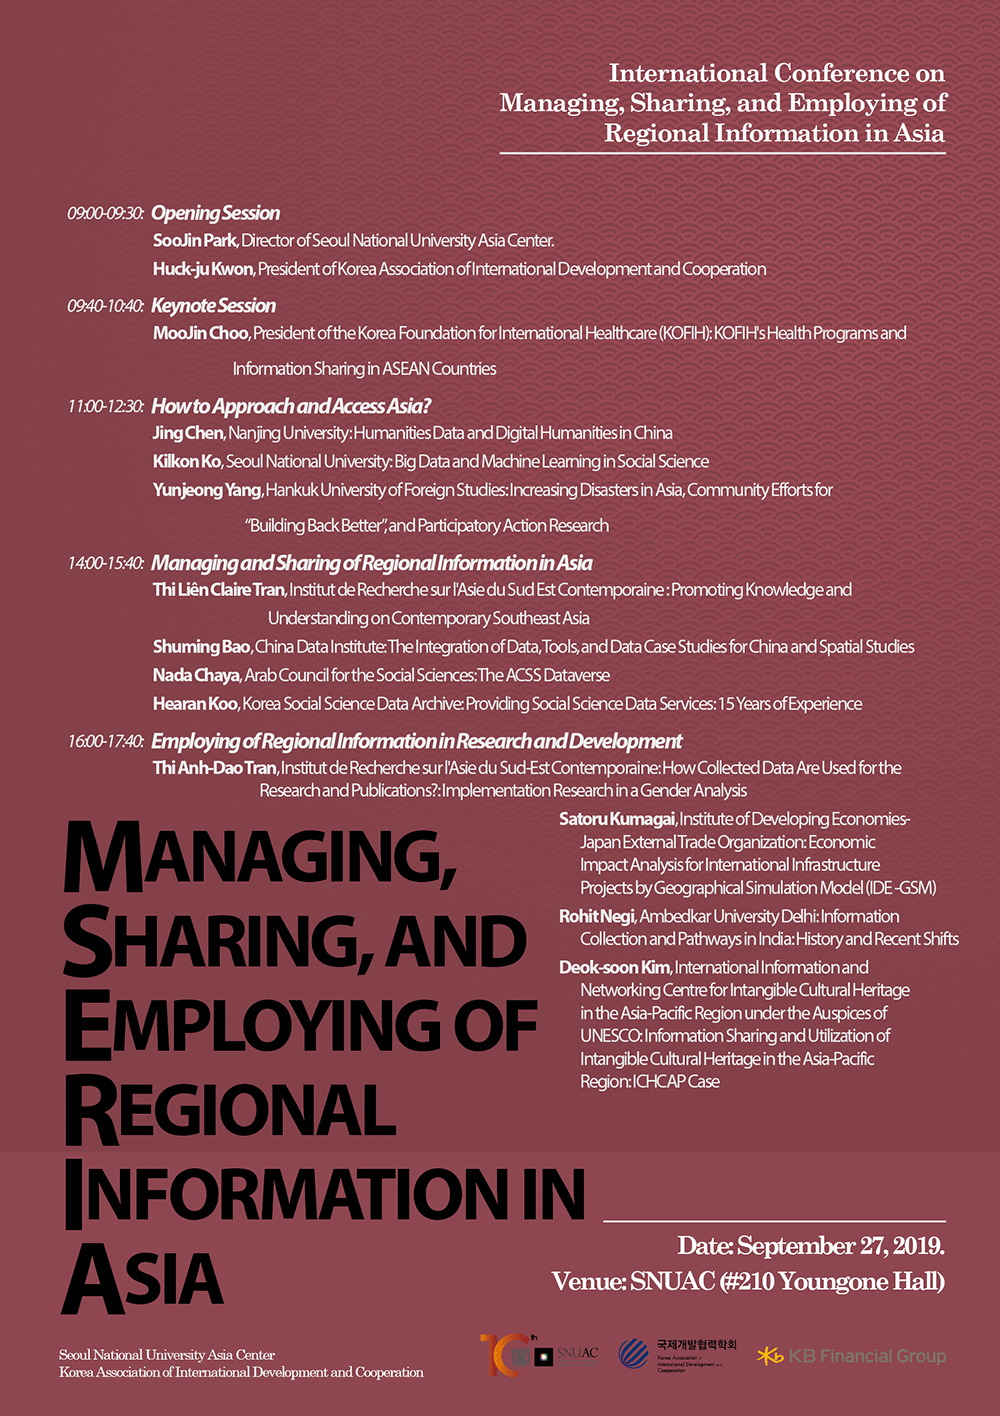 Managing, Sharing, and Employing of Regional Information in Asia